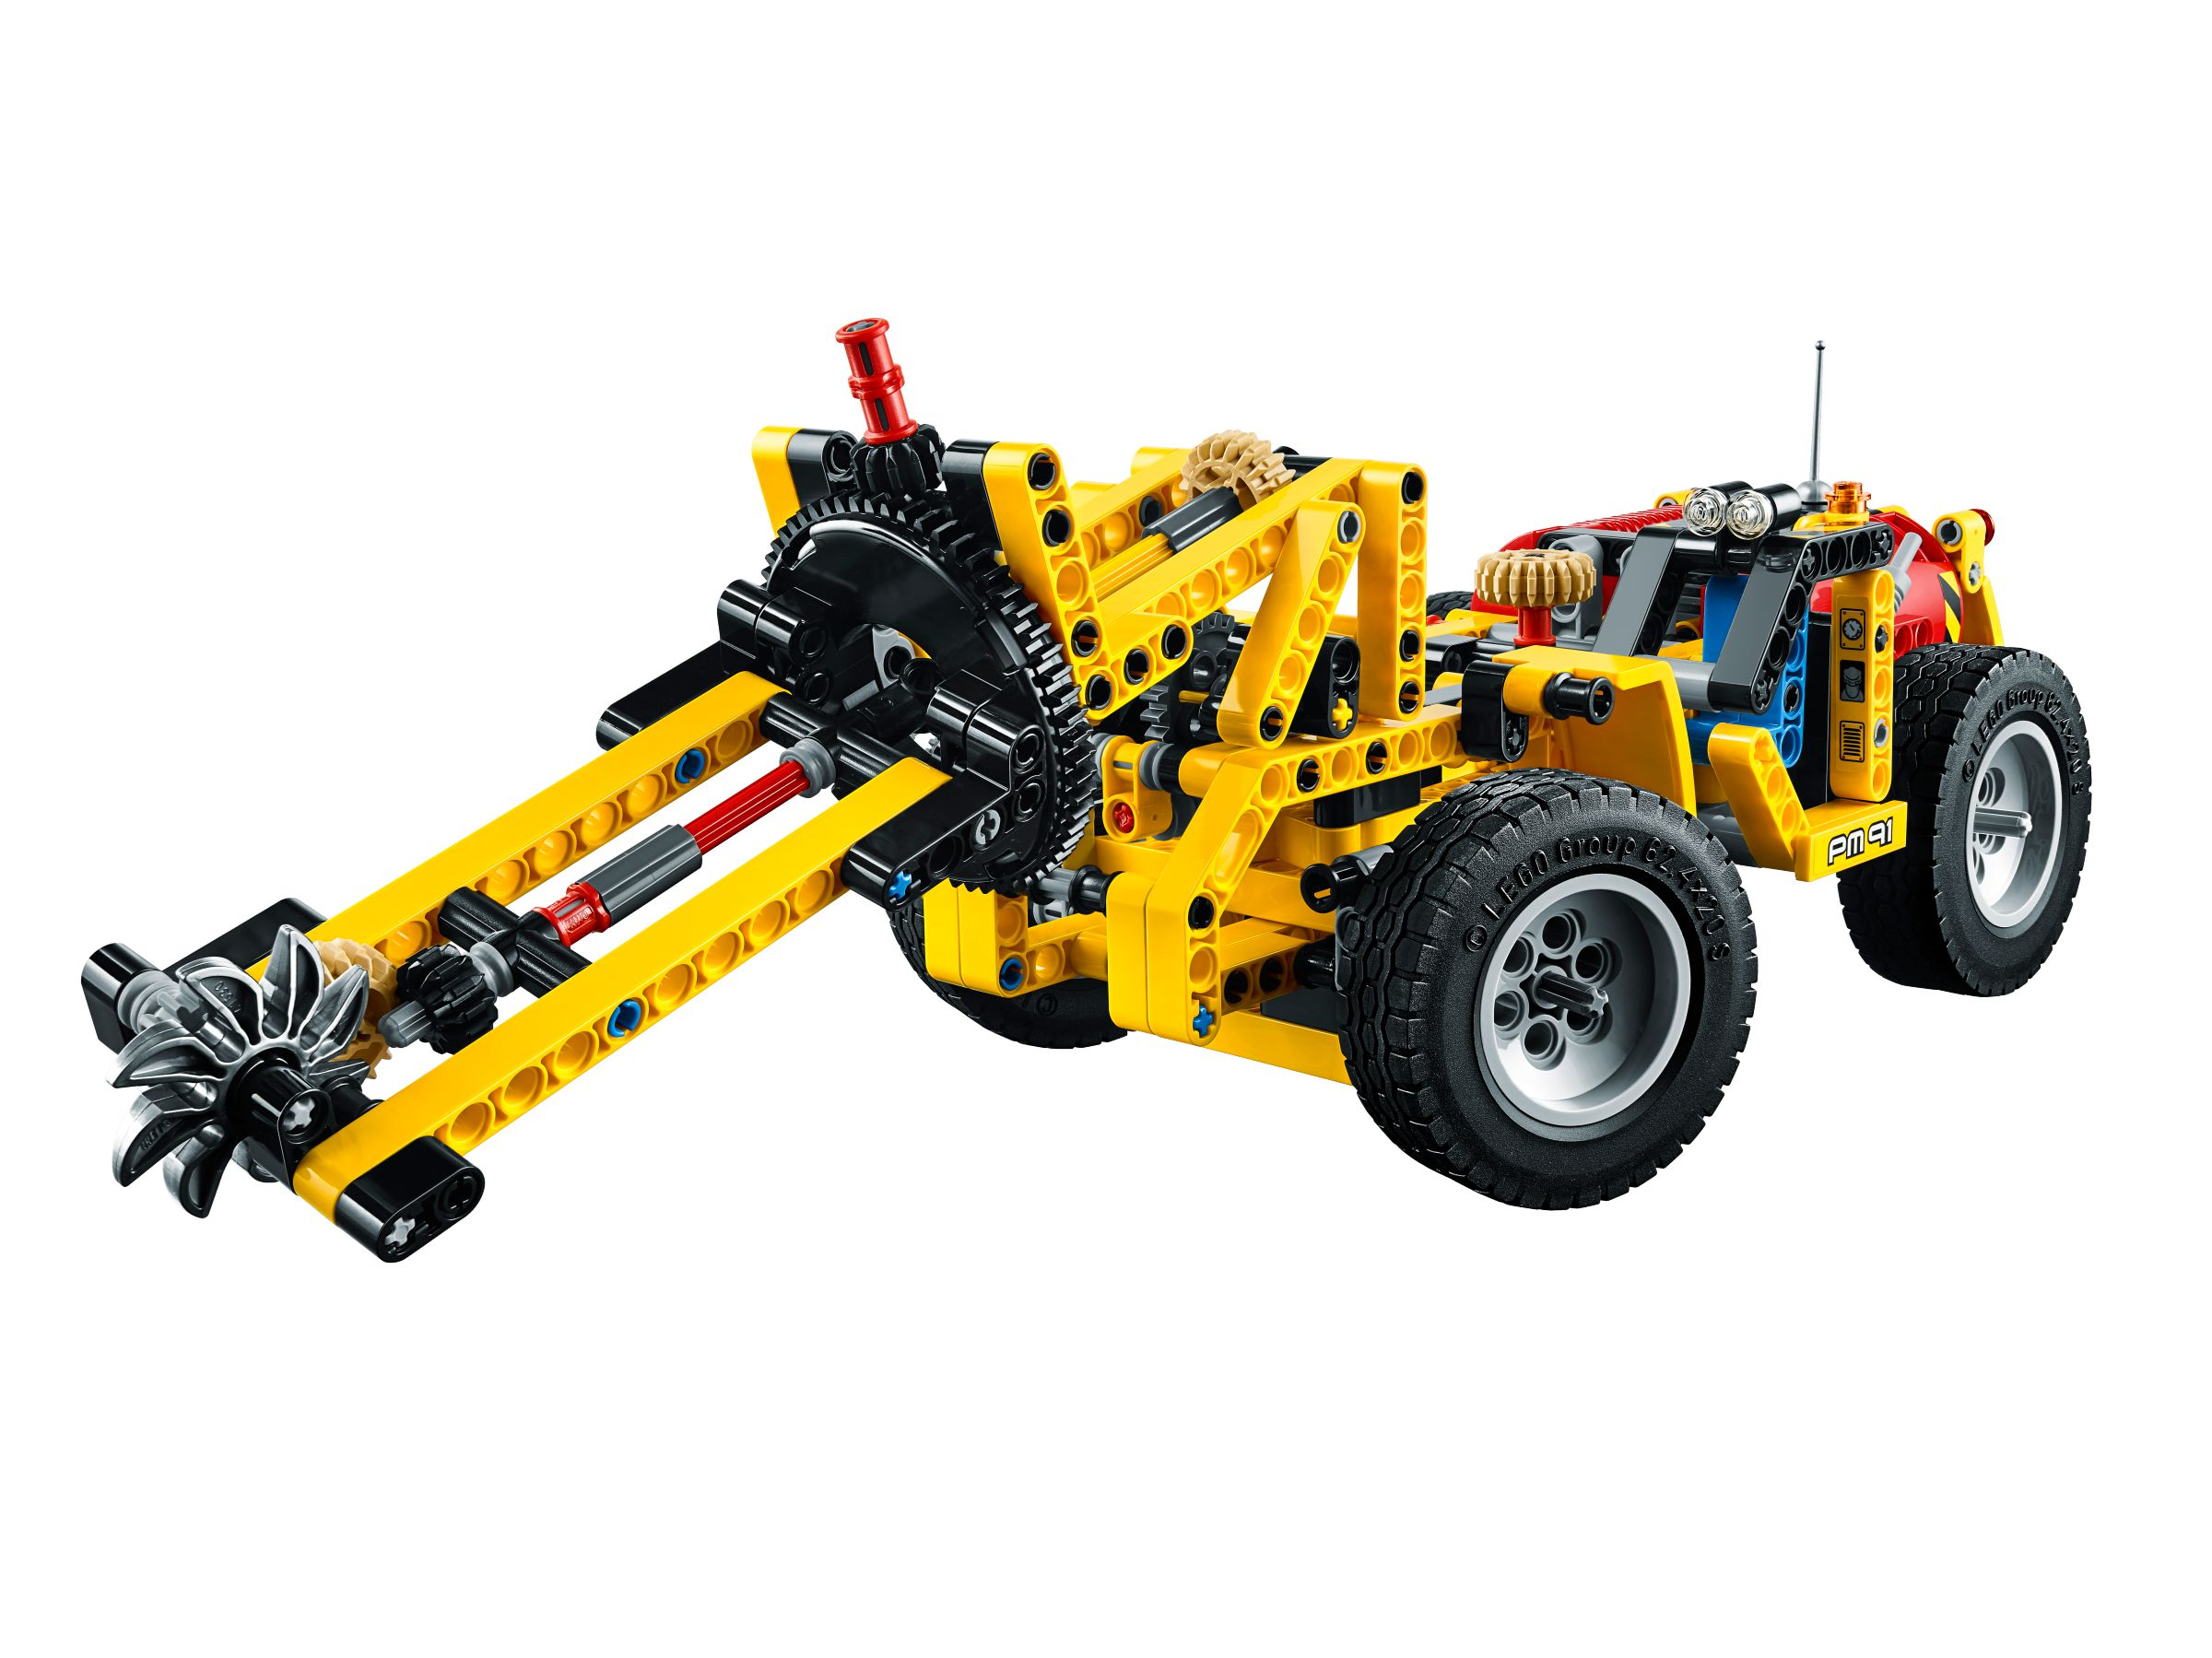 lego 42049 bergbau lader technic 2016 mine loader brickmerge. Black Bedroom Furniture Sets. Home Design Ideas